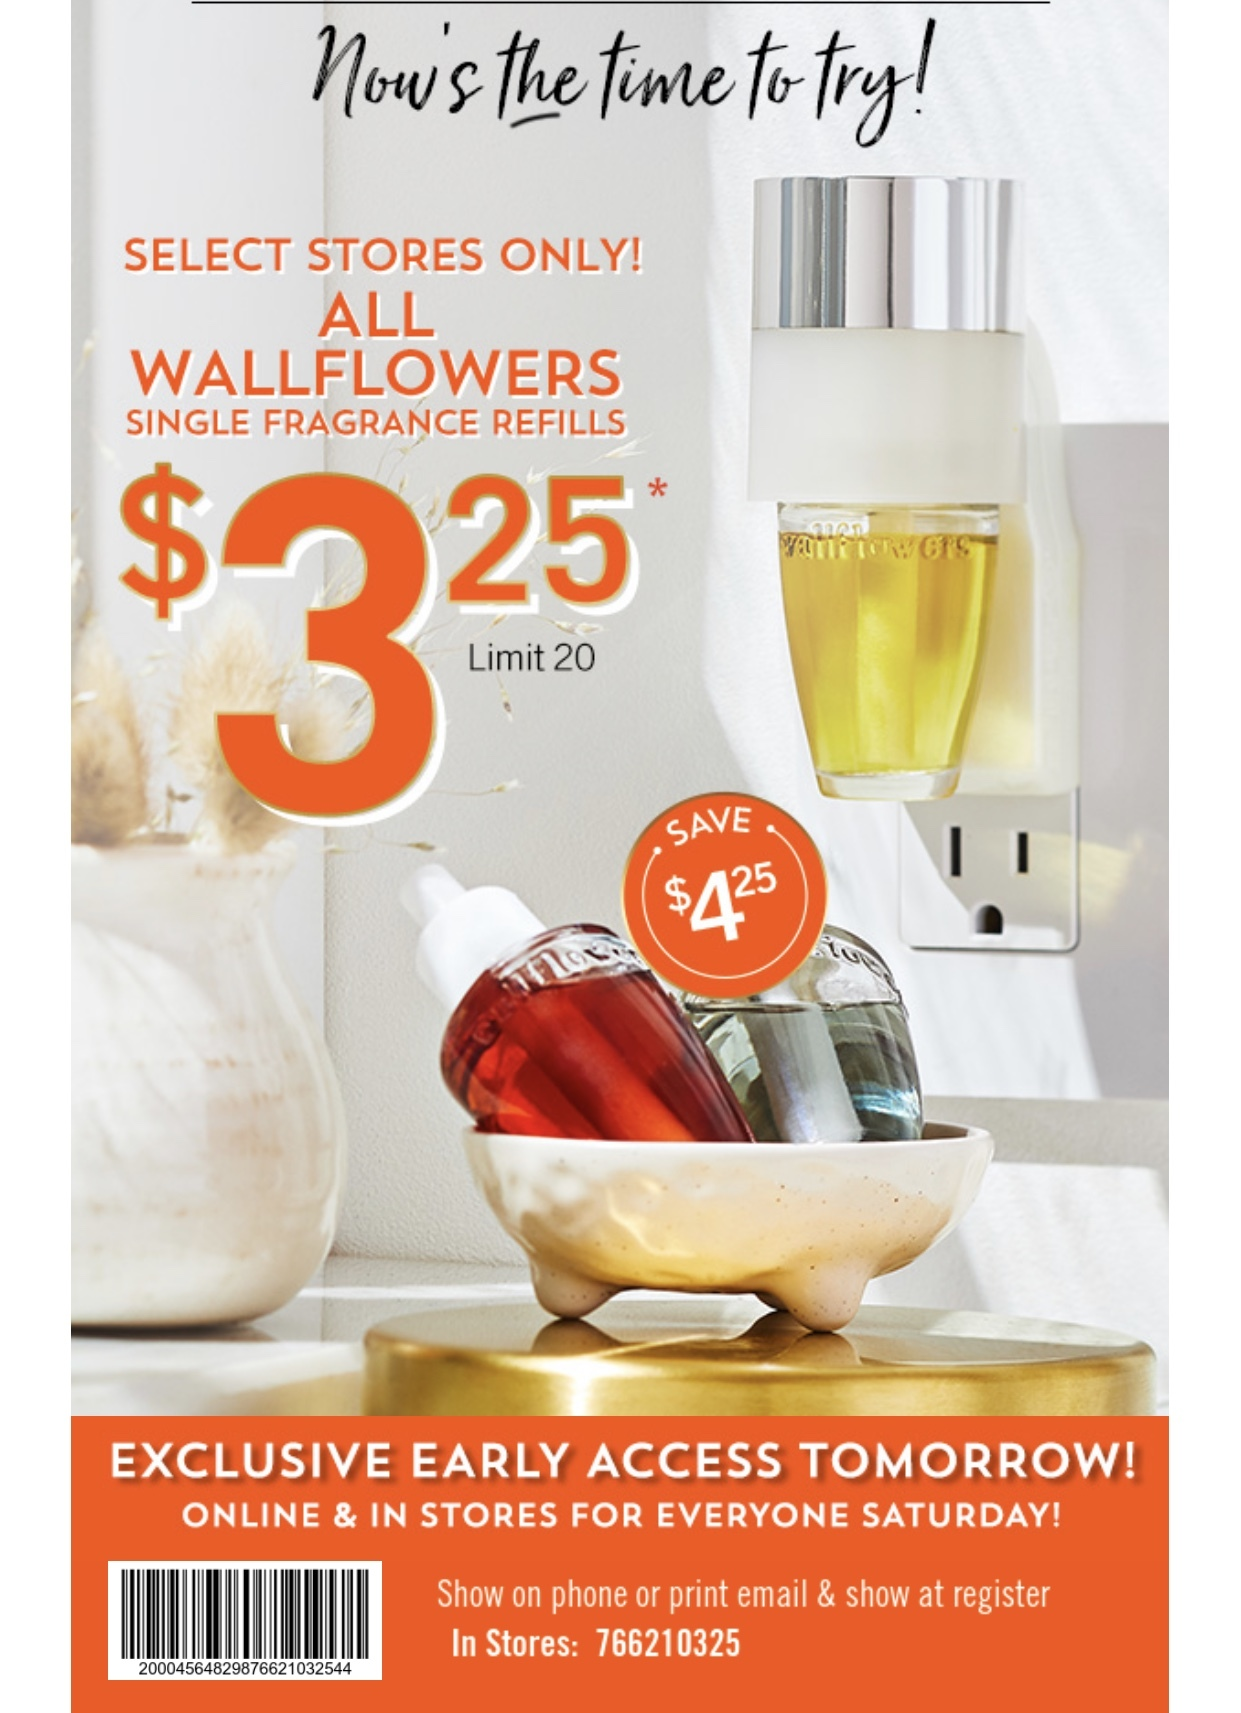 Bath and Body Works Coupon: $3.25 Wallflowers (Select Stores)